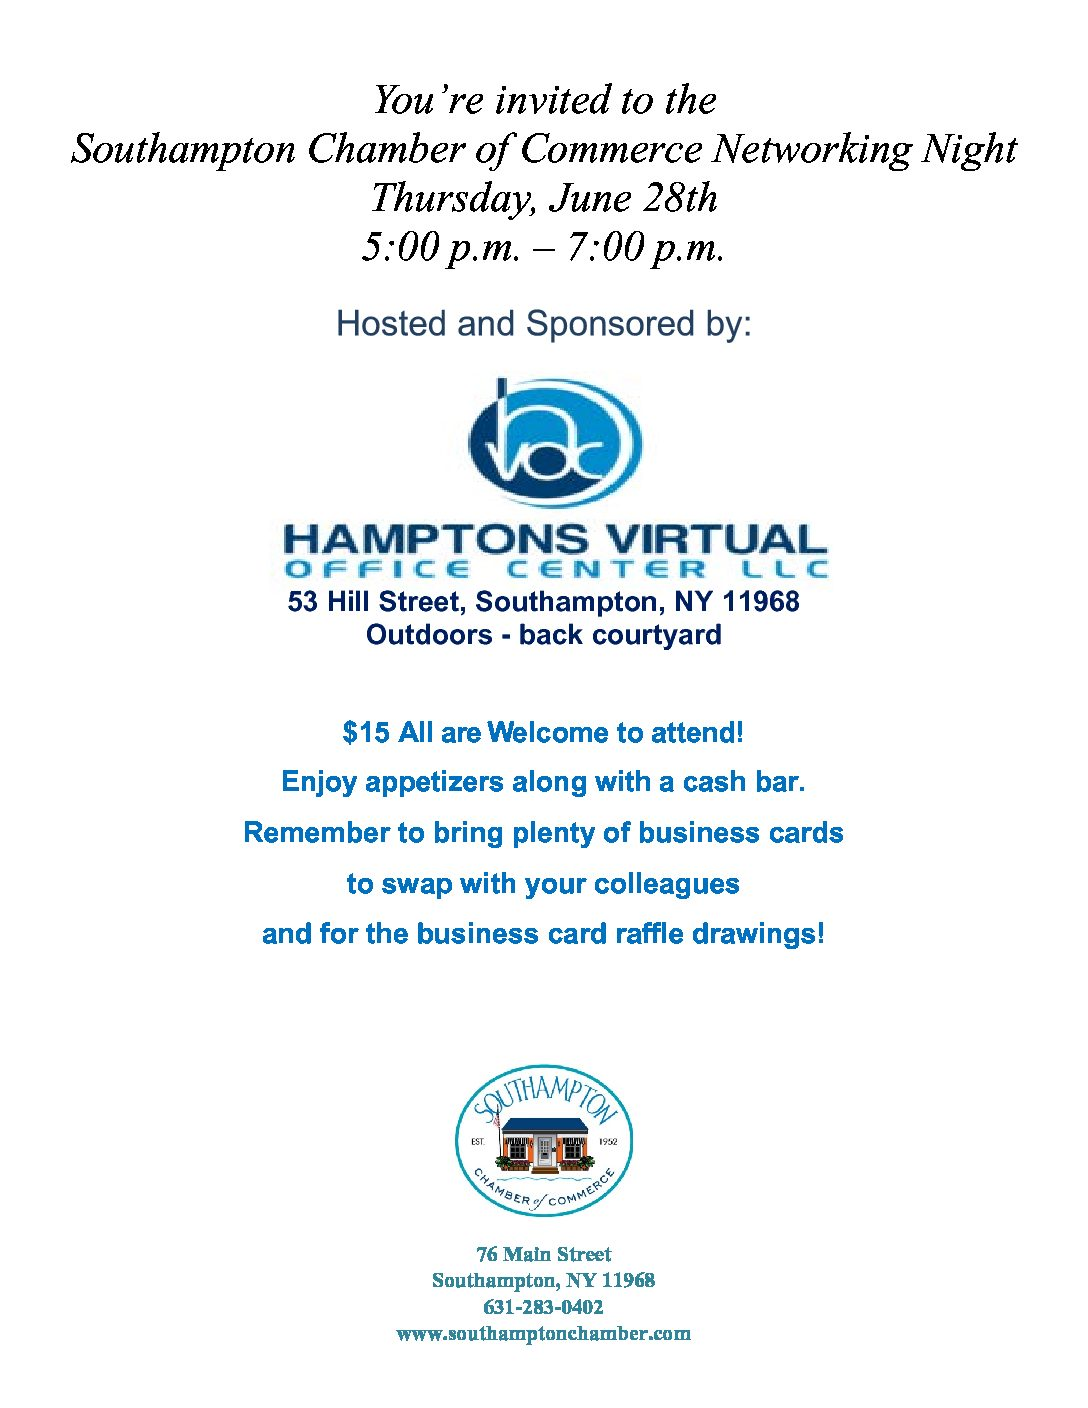 Networking Night-Thursday, June 28th | Southampton Chamber of Commerce